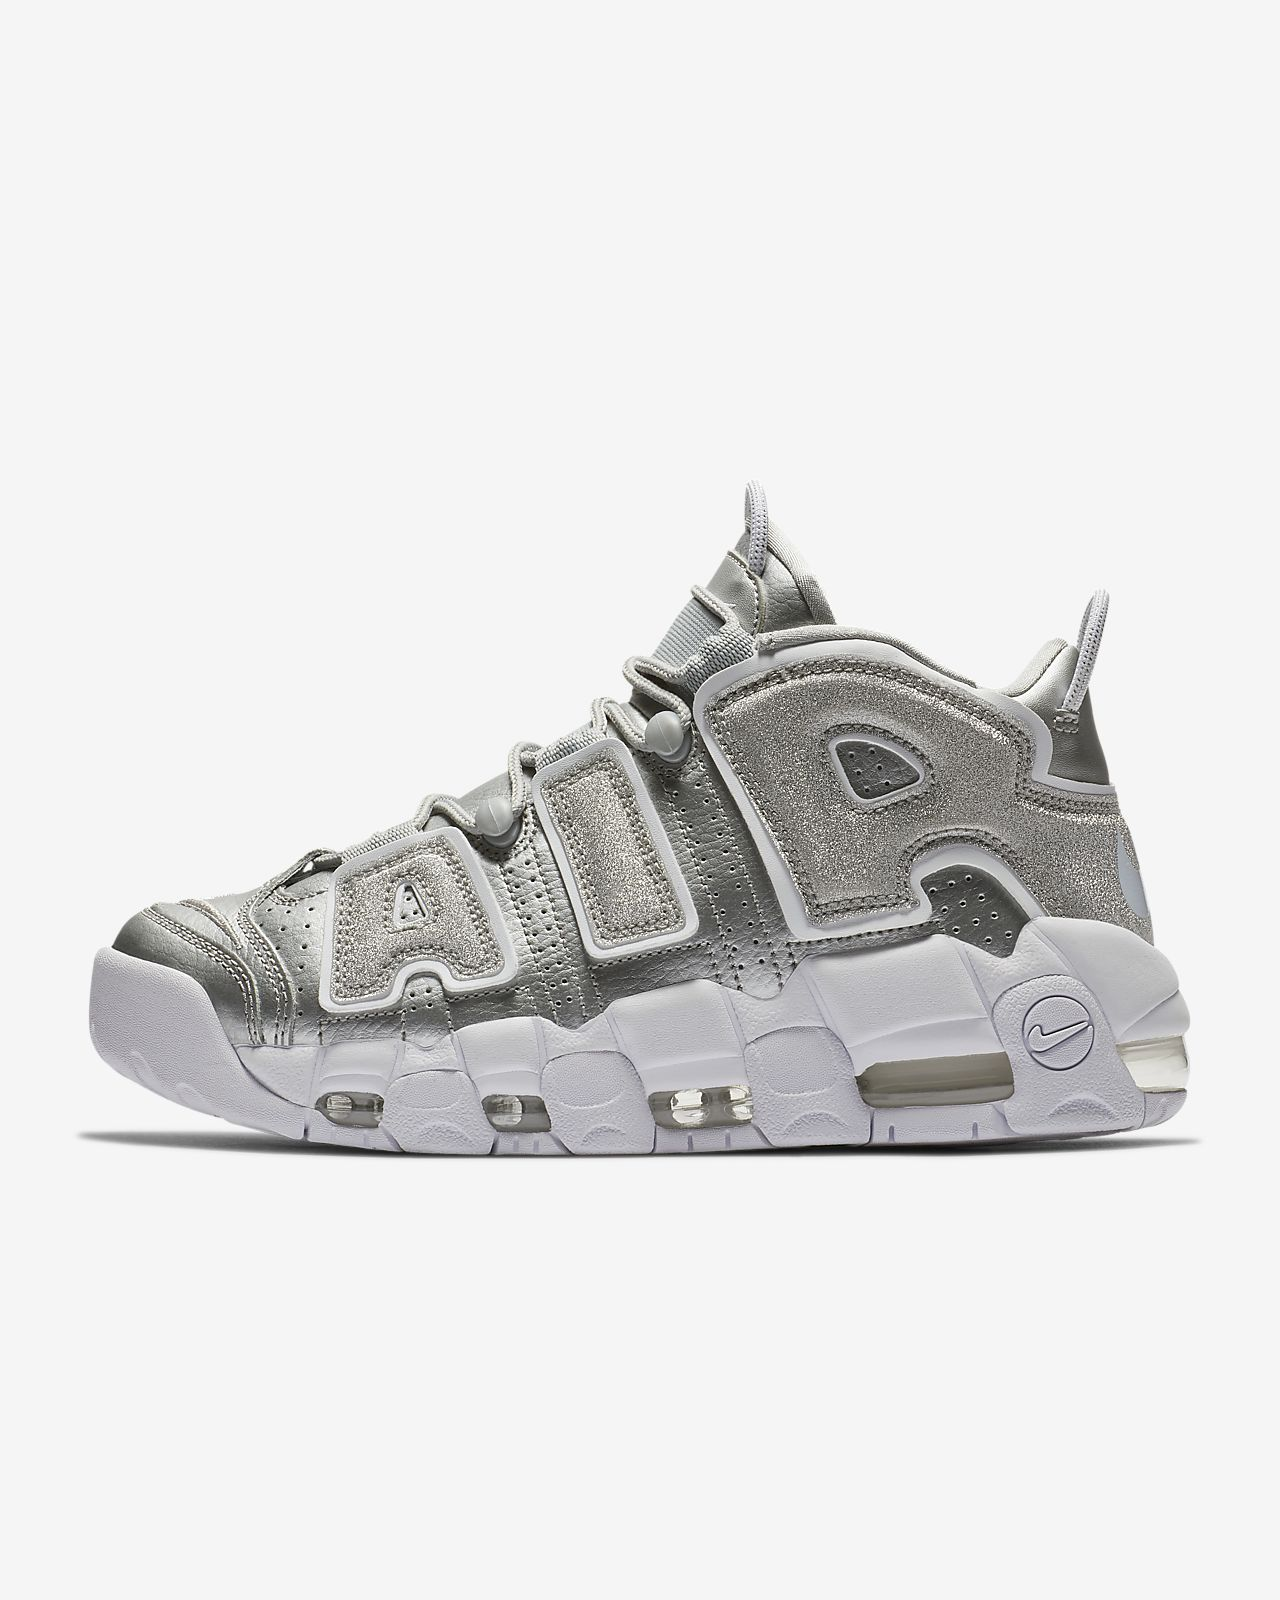 separation shoes 9bc6d 5d355 ... Nike Air More Uptempo Women s Shoe